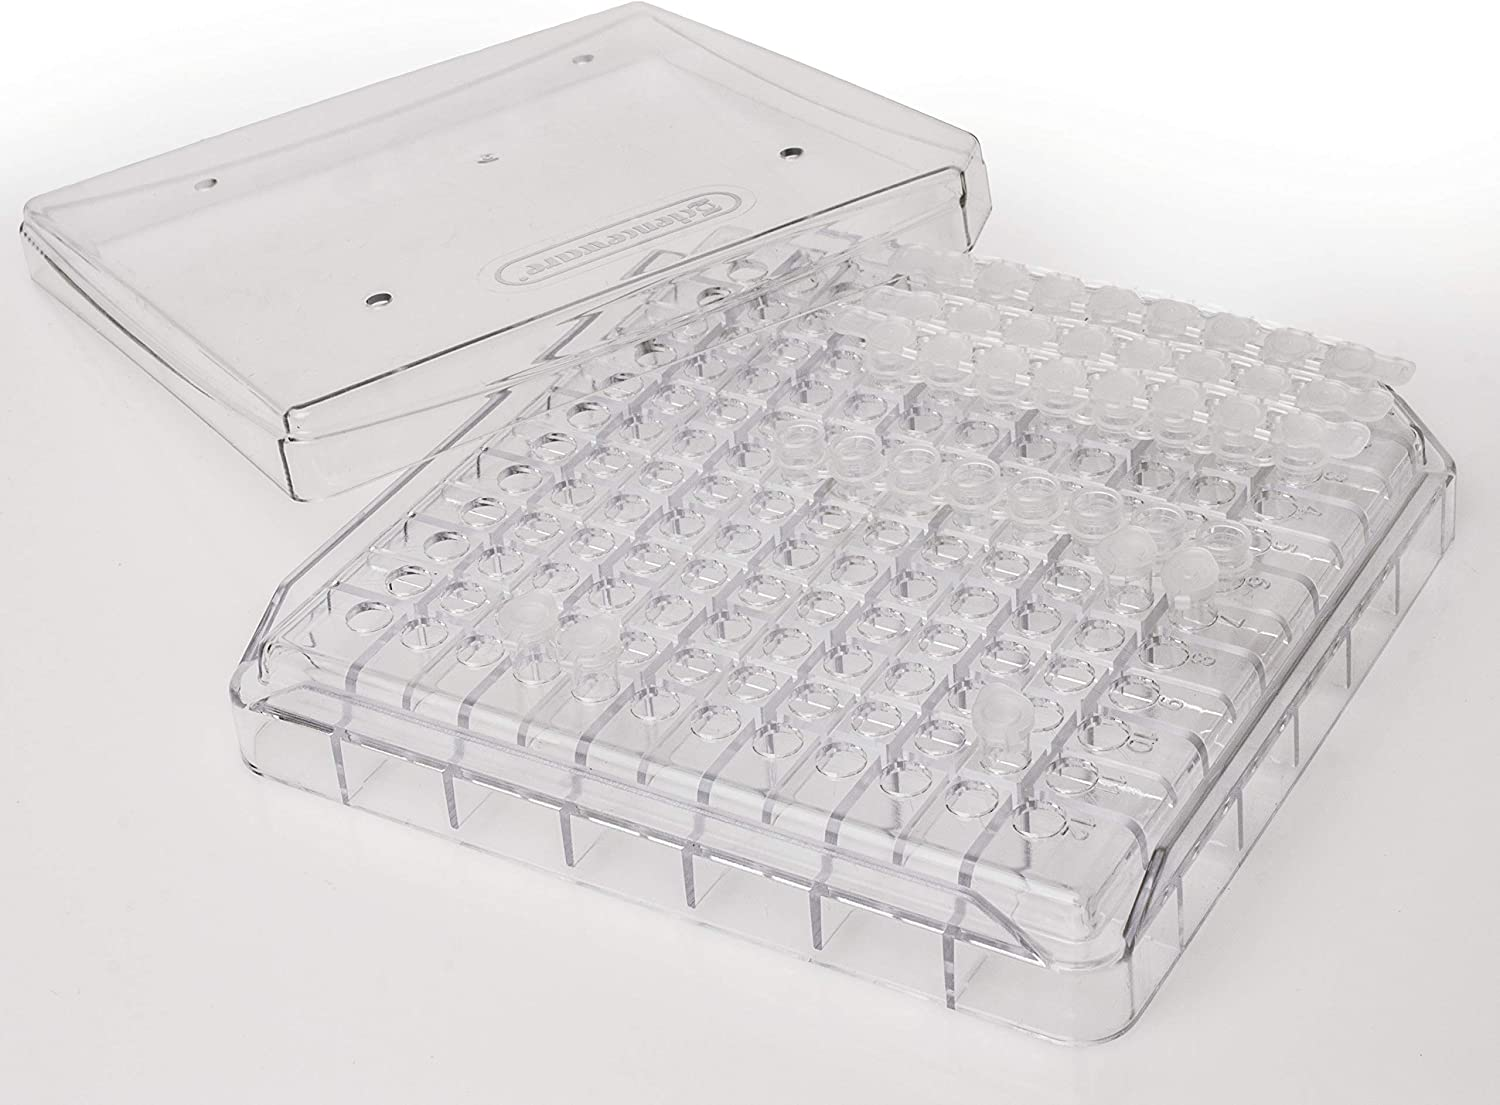 Bel-Art F18837-0000 PCR Tube Freezer Storage Box; 0.2ml, 144 Places, 5¼ x 5¼ x 1 in., Polycarbonate (Pack of 5)